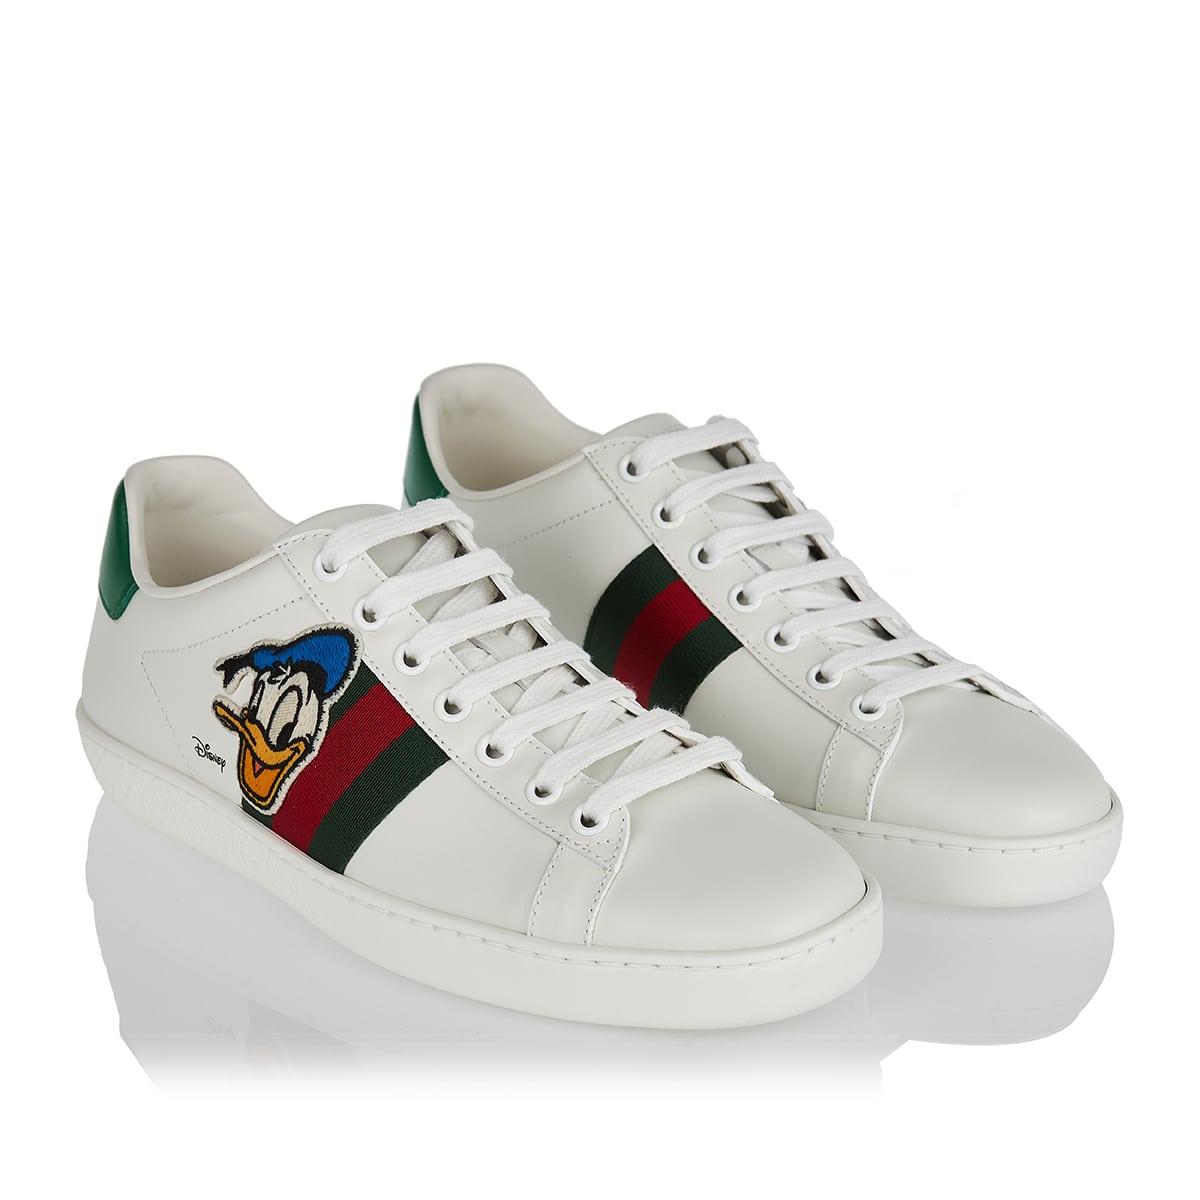 Disney x Gucci Ace sneakers